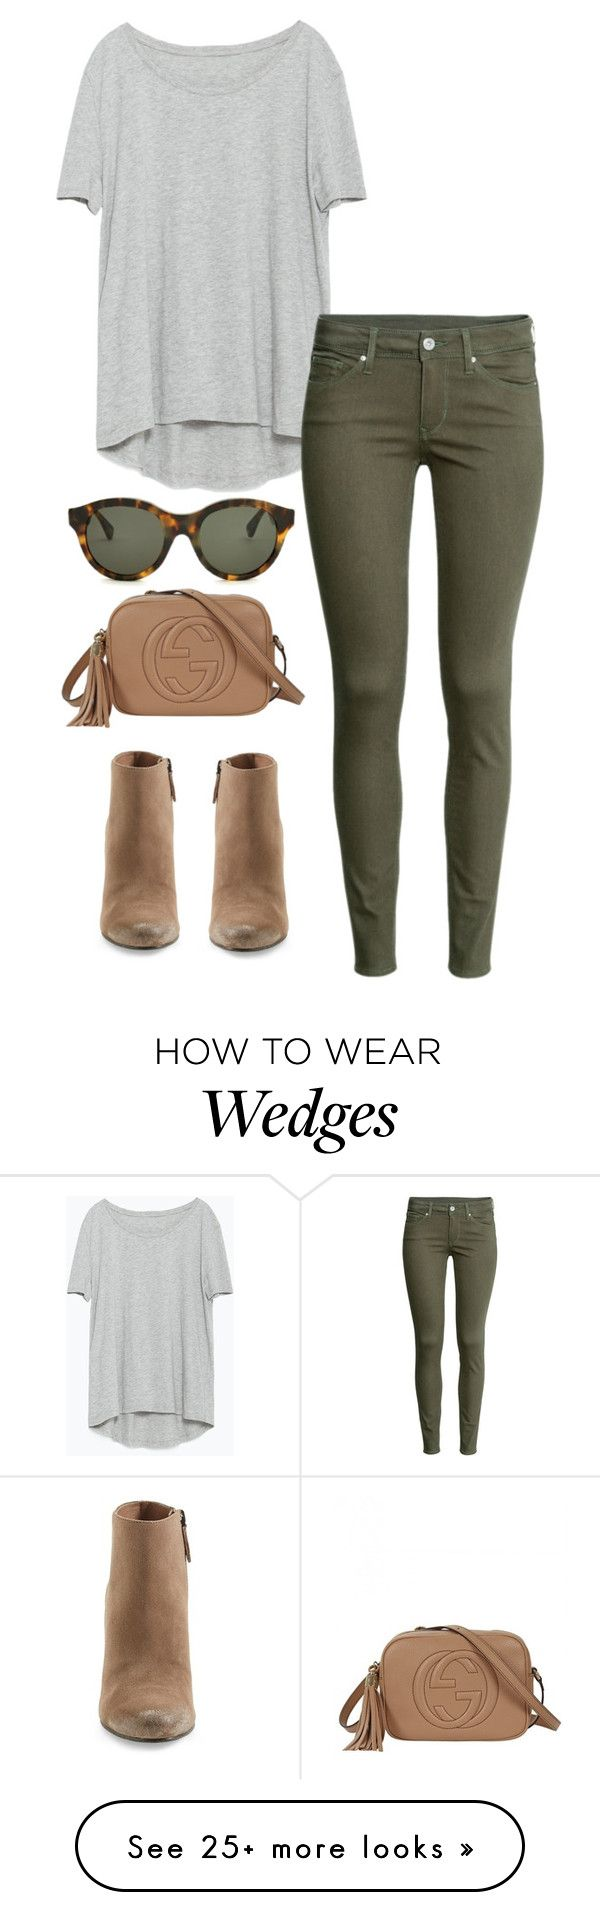 """army green jeans"" by kcunningham1 on Polyvore"